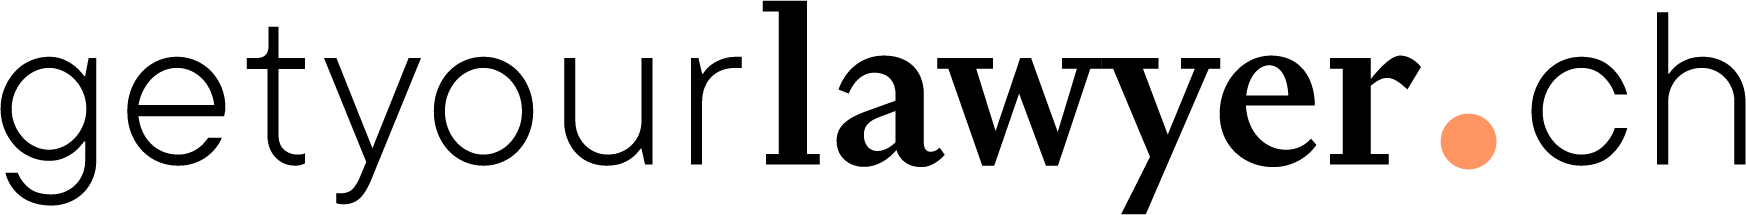 Getyourlawyer Logo Transparent